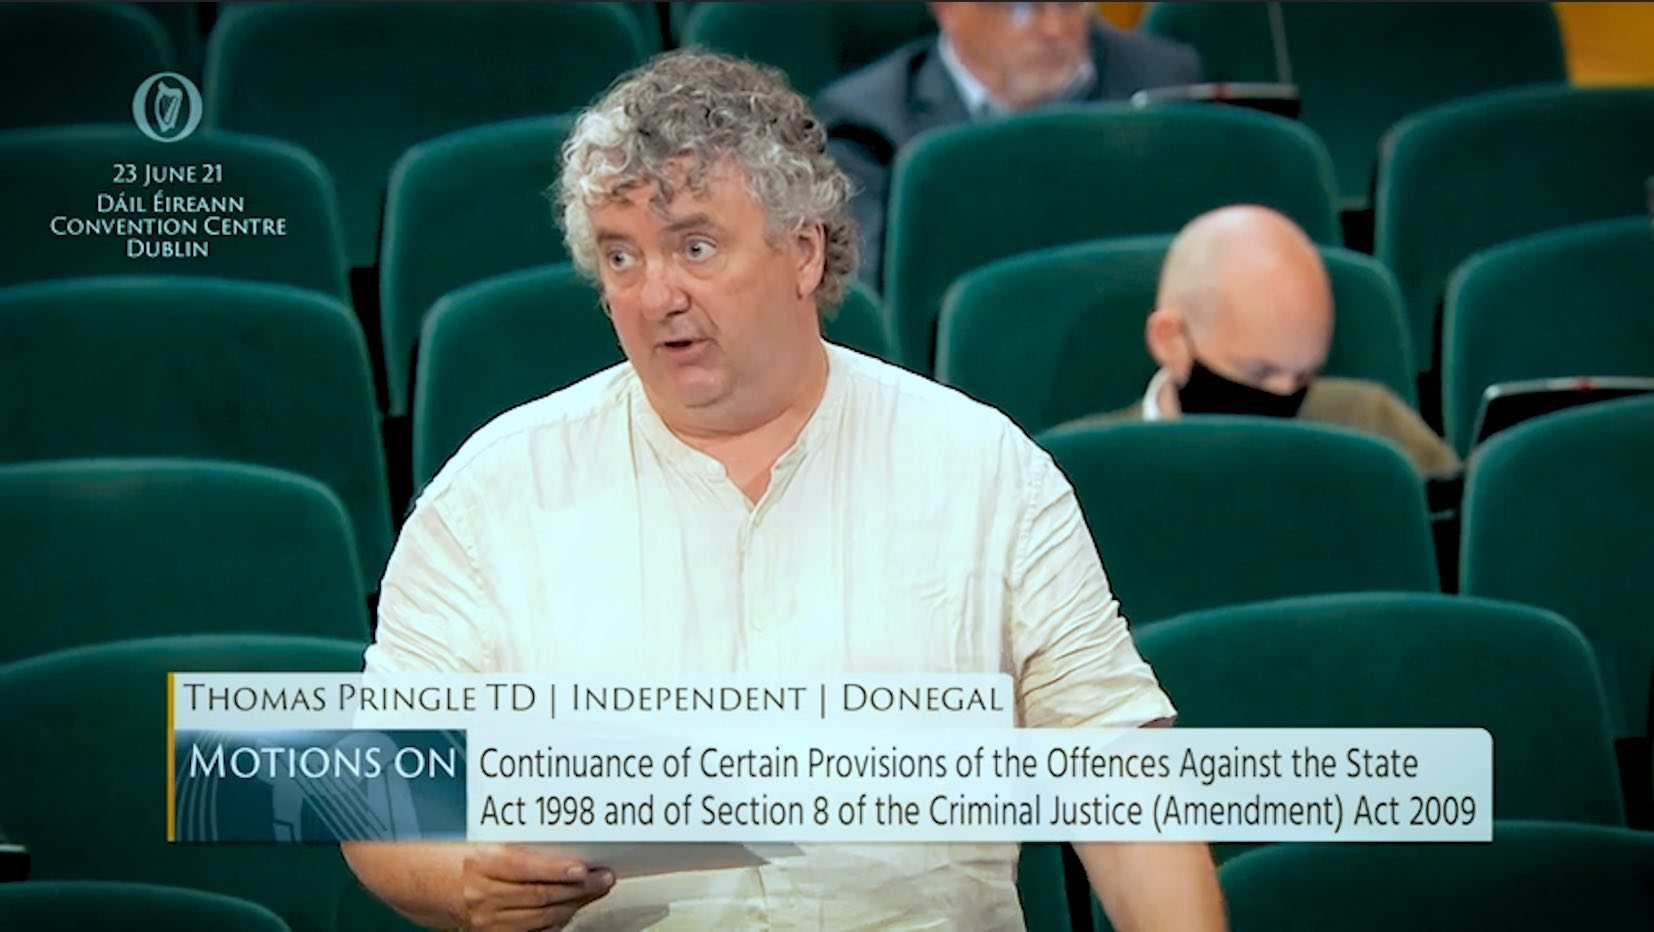 Pringle: Government should not have 'carte blanche' on continuance of criminal justice provisions